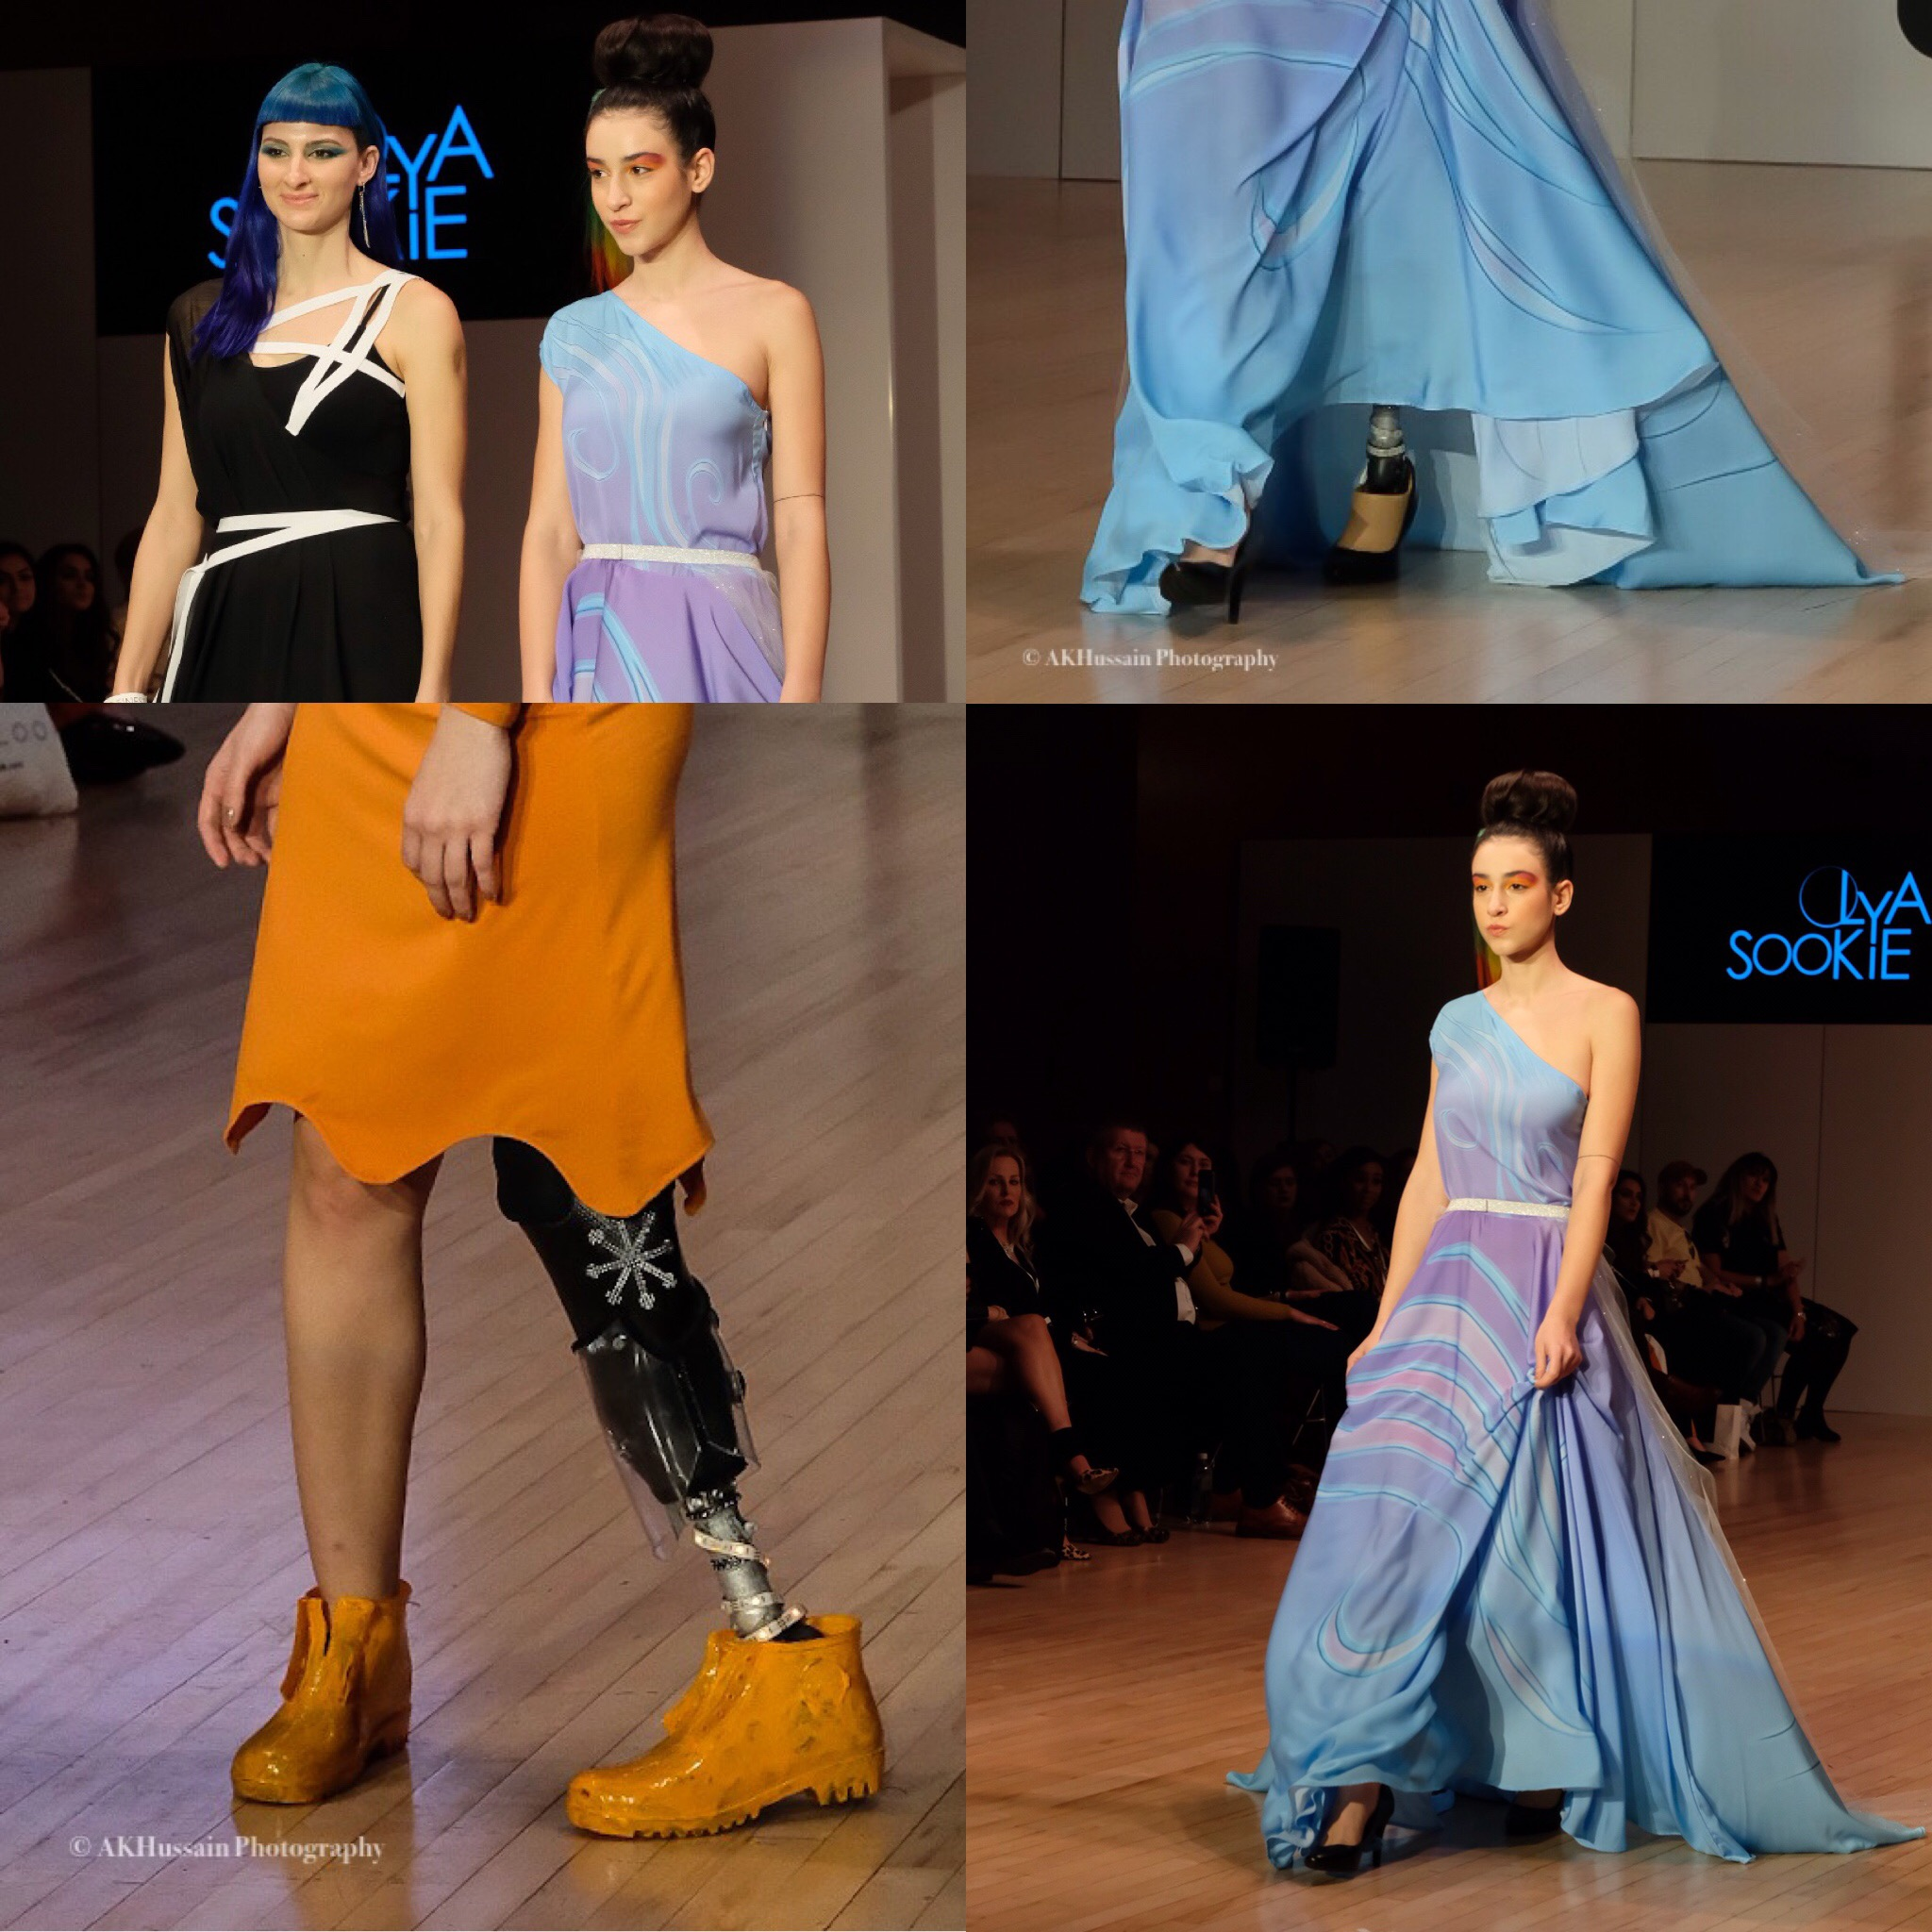 OLYA SOOKIE - Croatia - Lovely to see this designer again and so glad that the show promoted Ability not Disability with their model Chiara Bordi - more of this please!Bottom left is Kepanza rest are Olya Sookie